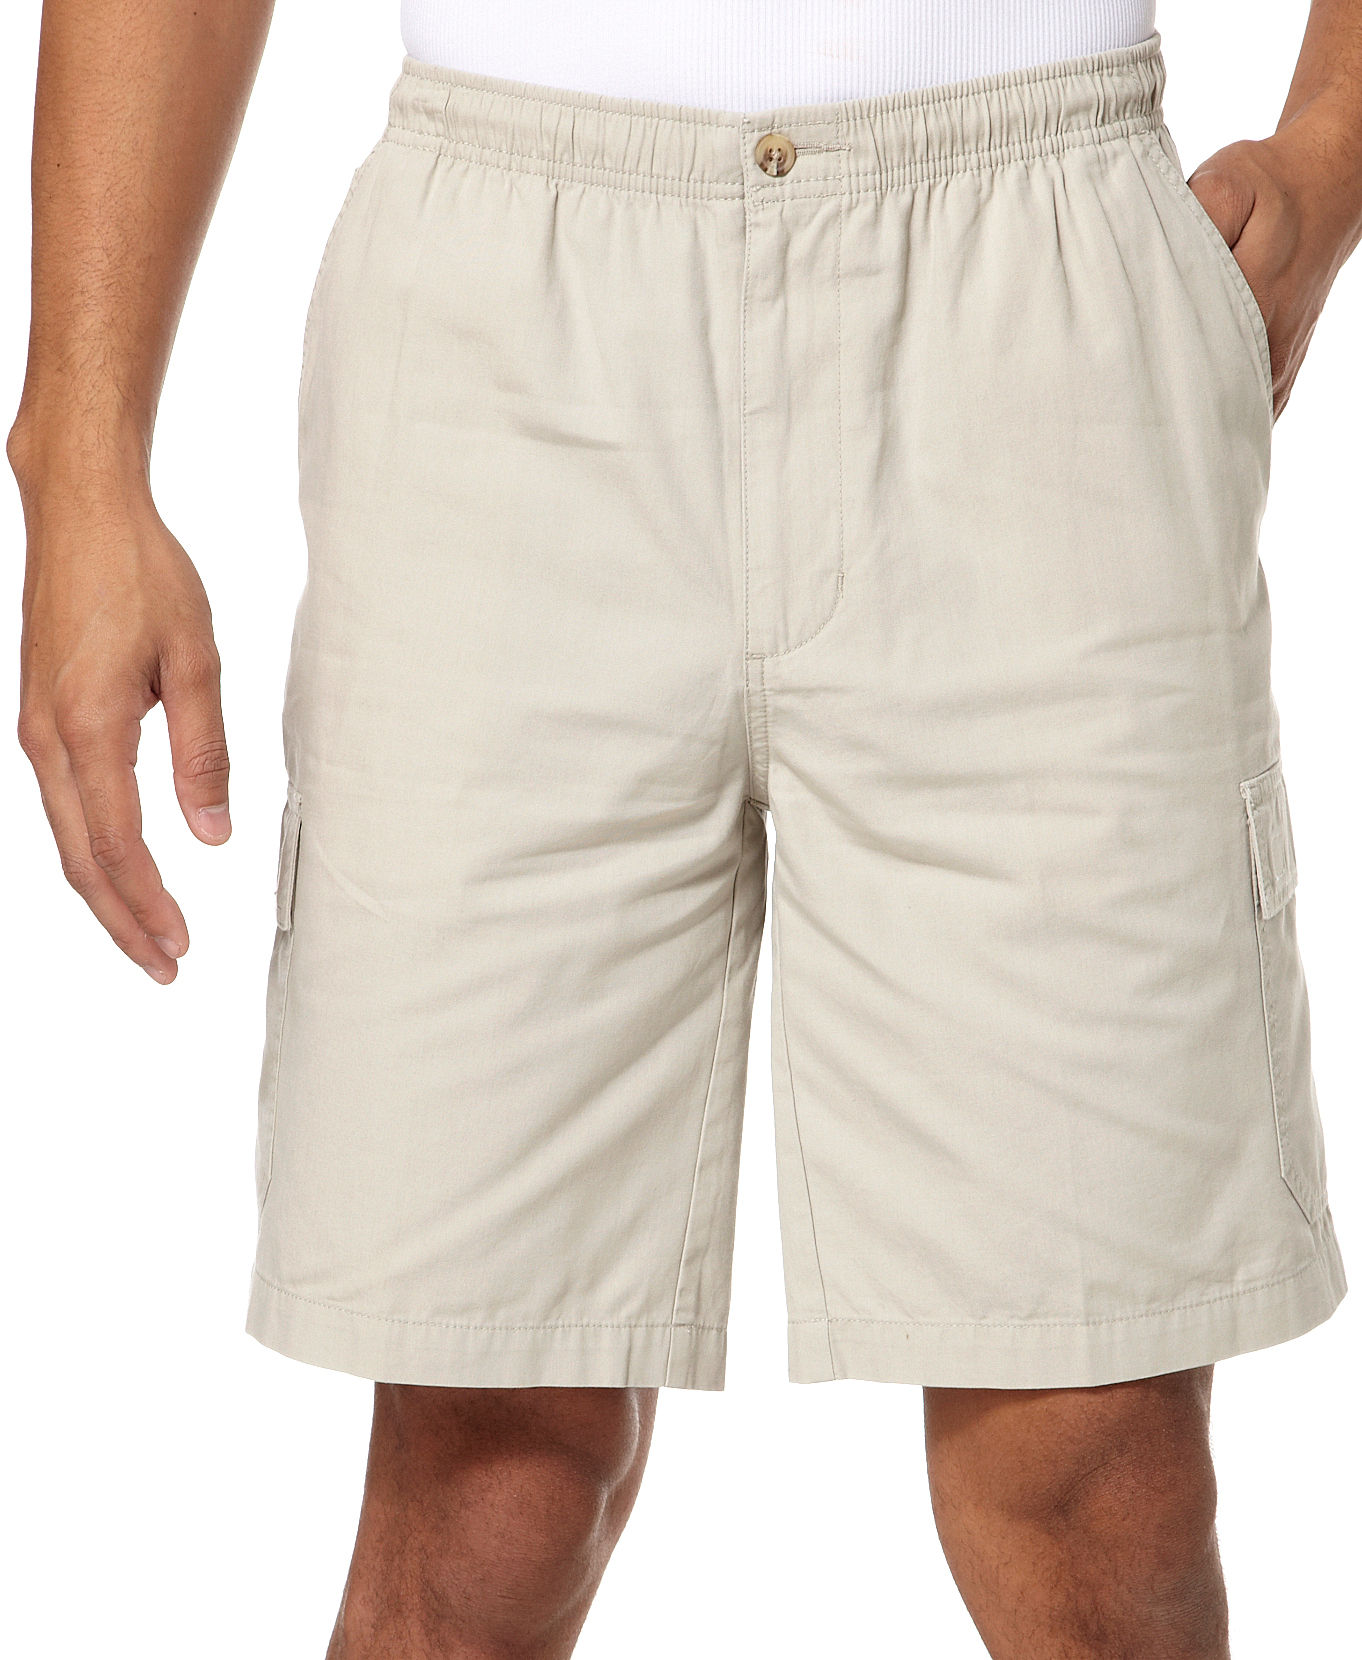 Windham Pointe Elastic Waist Mens Cargo Shorts | eBay